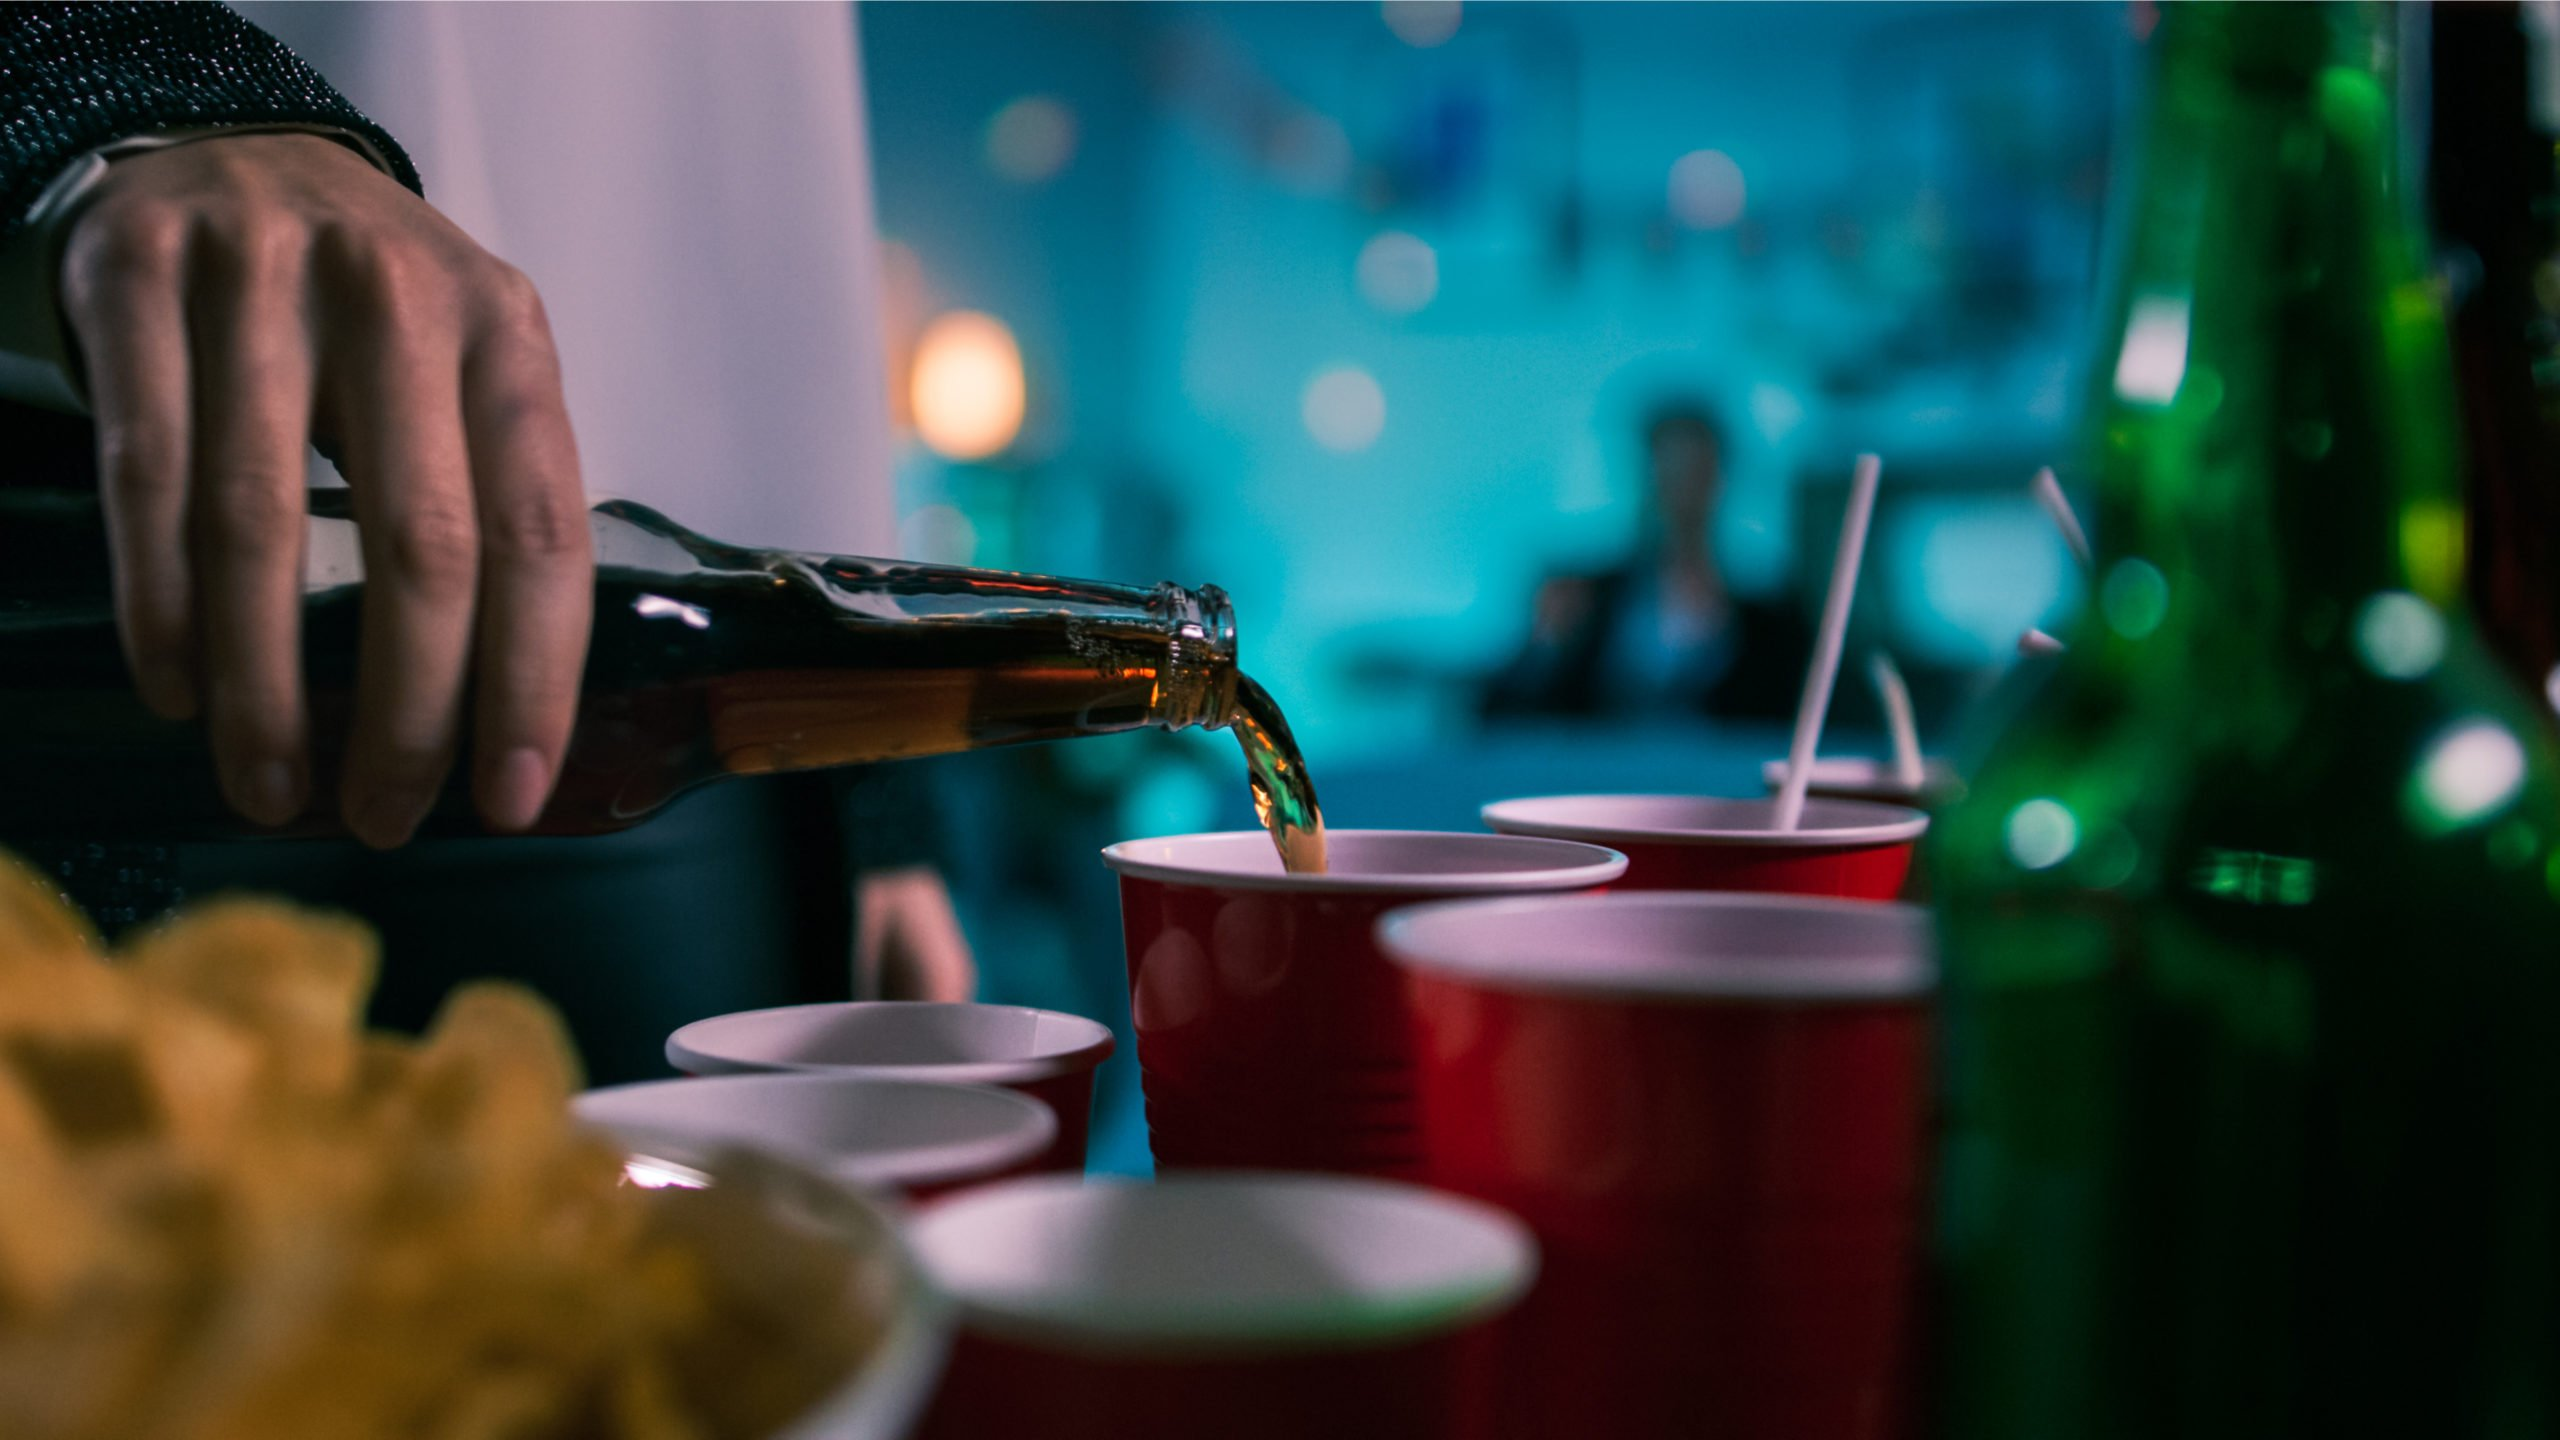 Most Commonly Abused Drugs in College Resurgence - A college student pours a beer into a cup during a drug and alcohol-infused party. If students use too much, drug rehab may be a good idea for them.